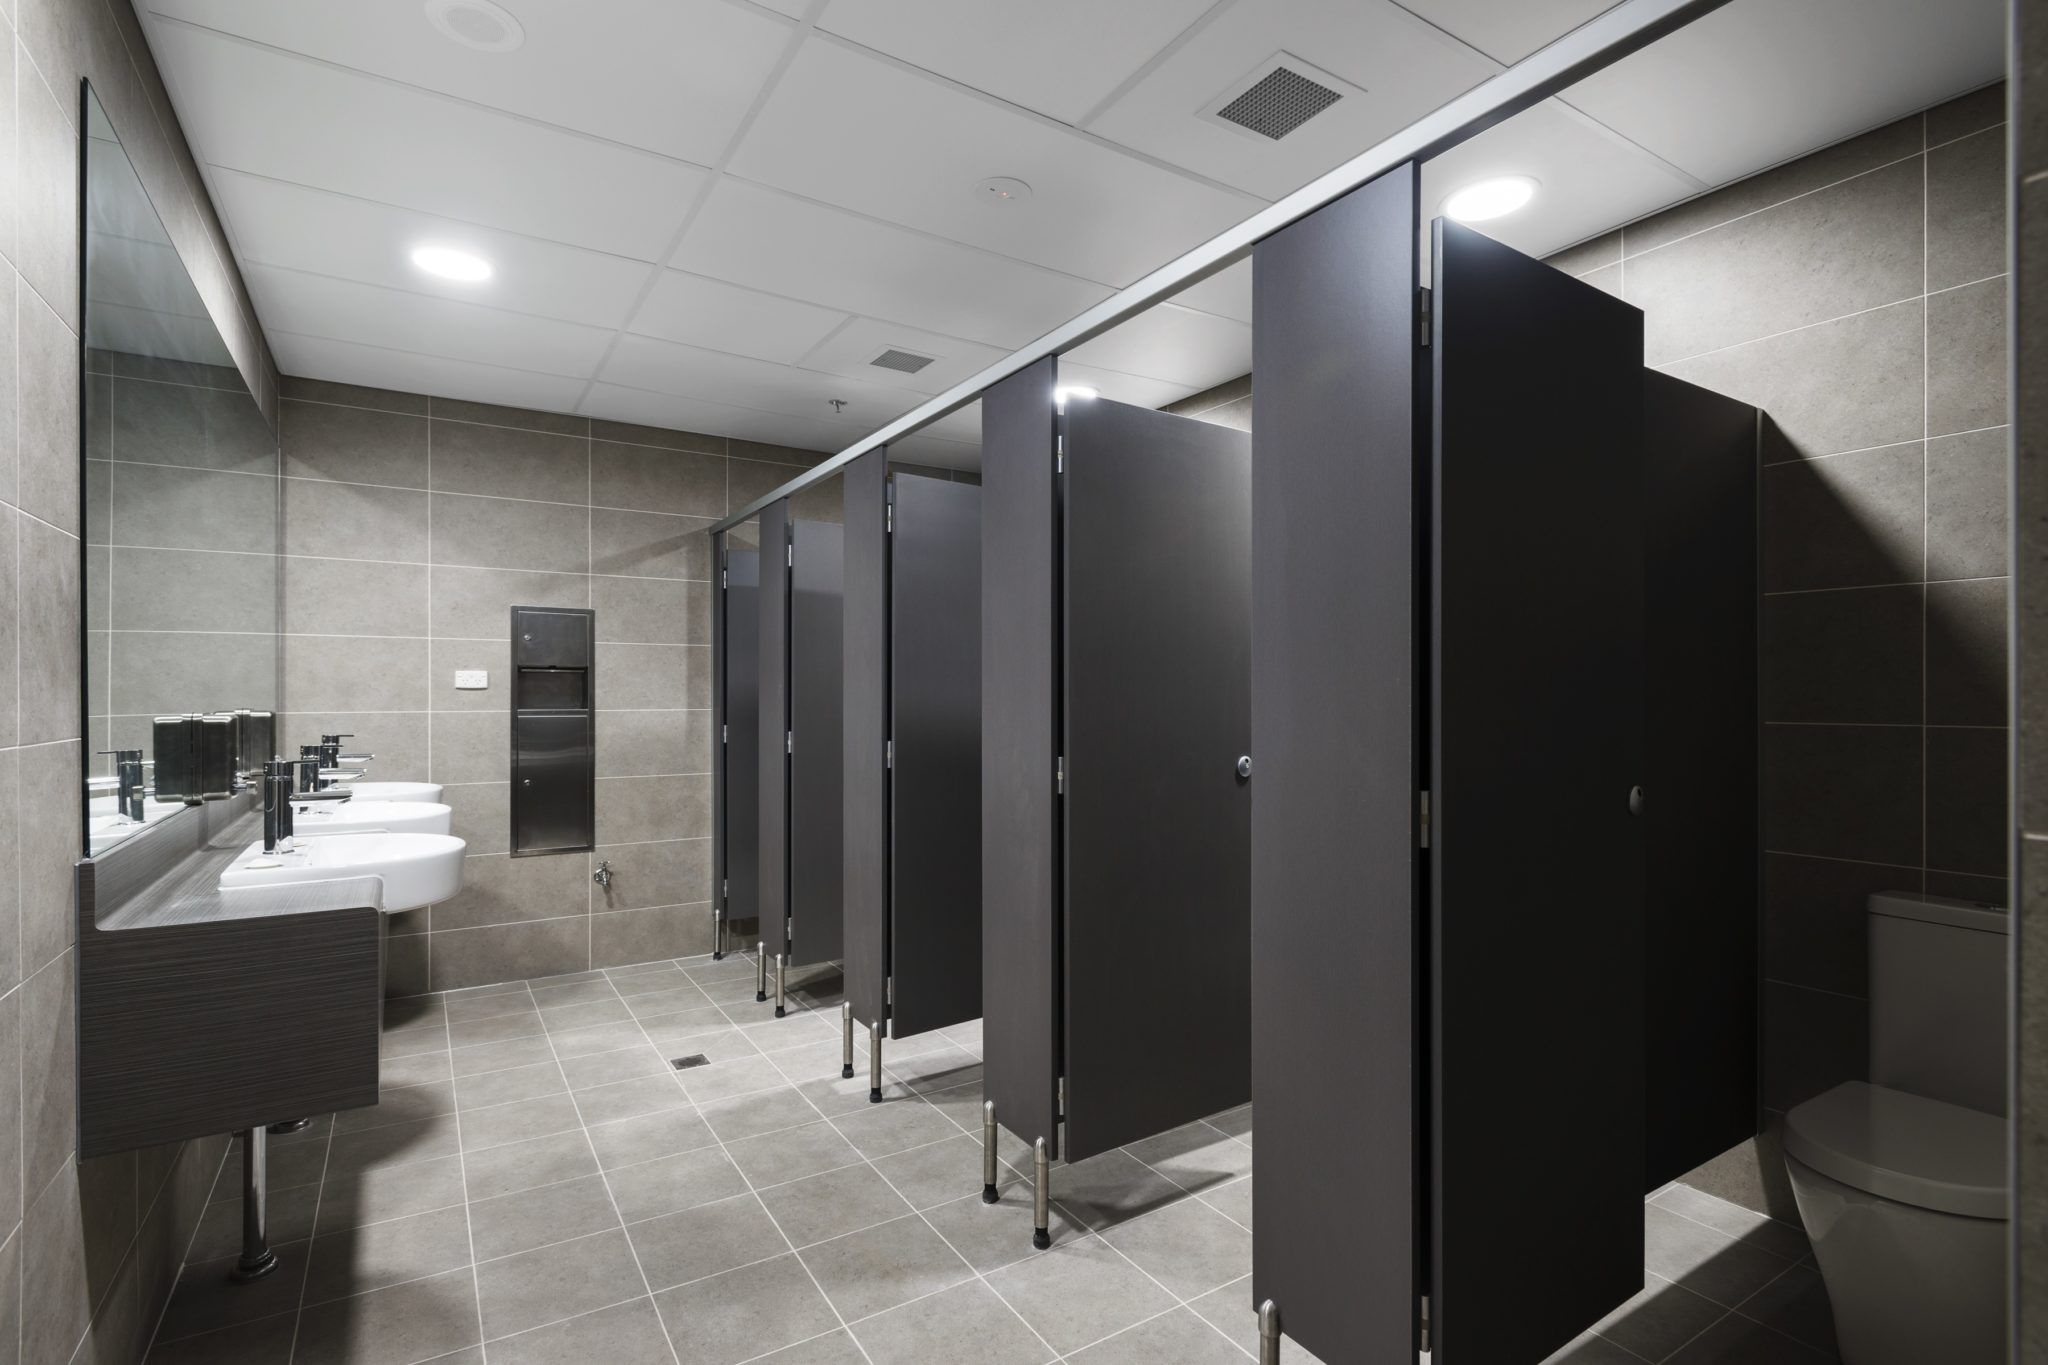 Toilet Area Is One Of The Important Parts In Every Home Or